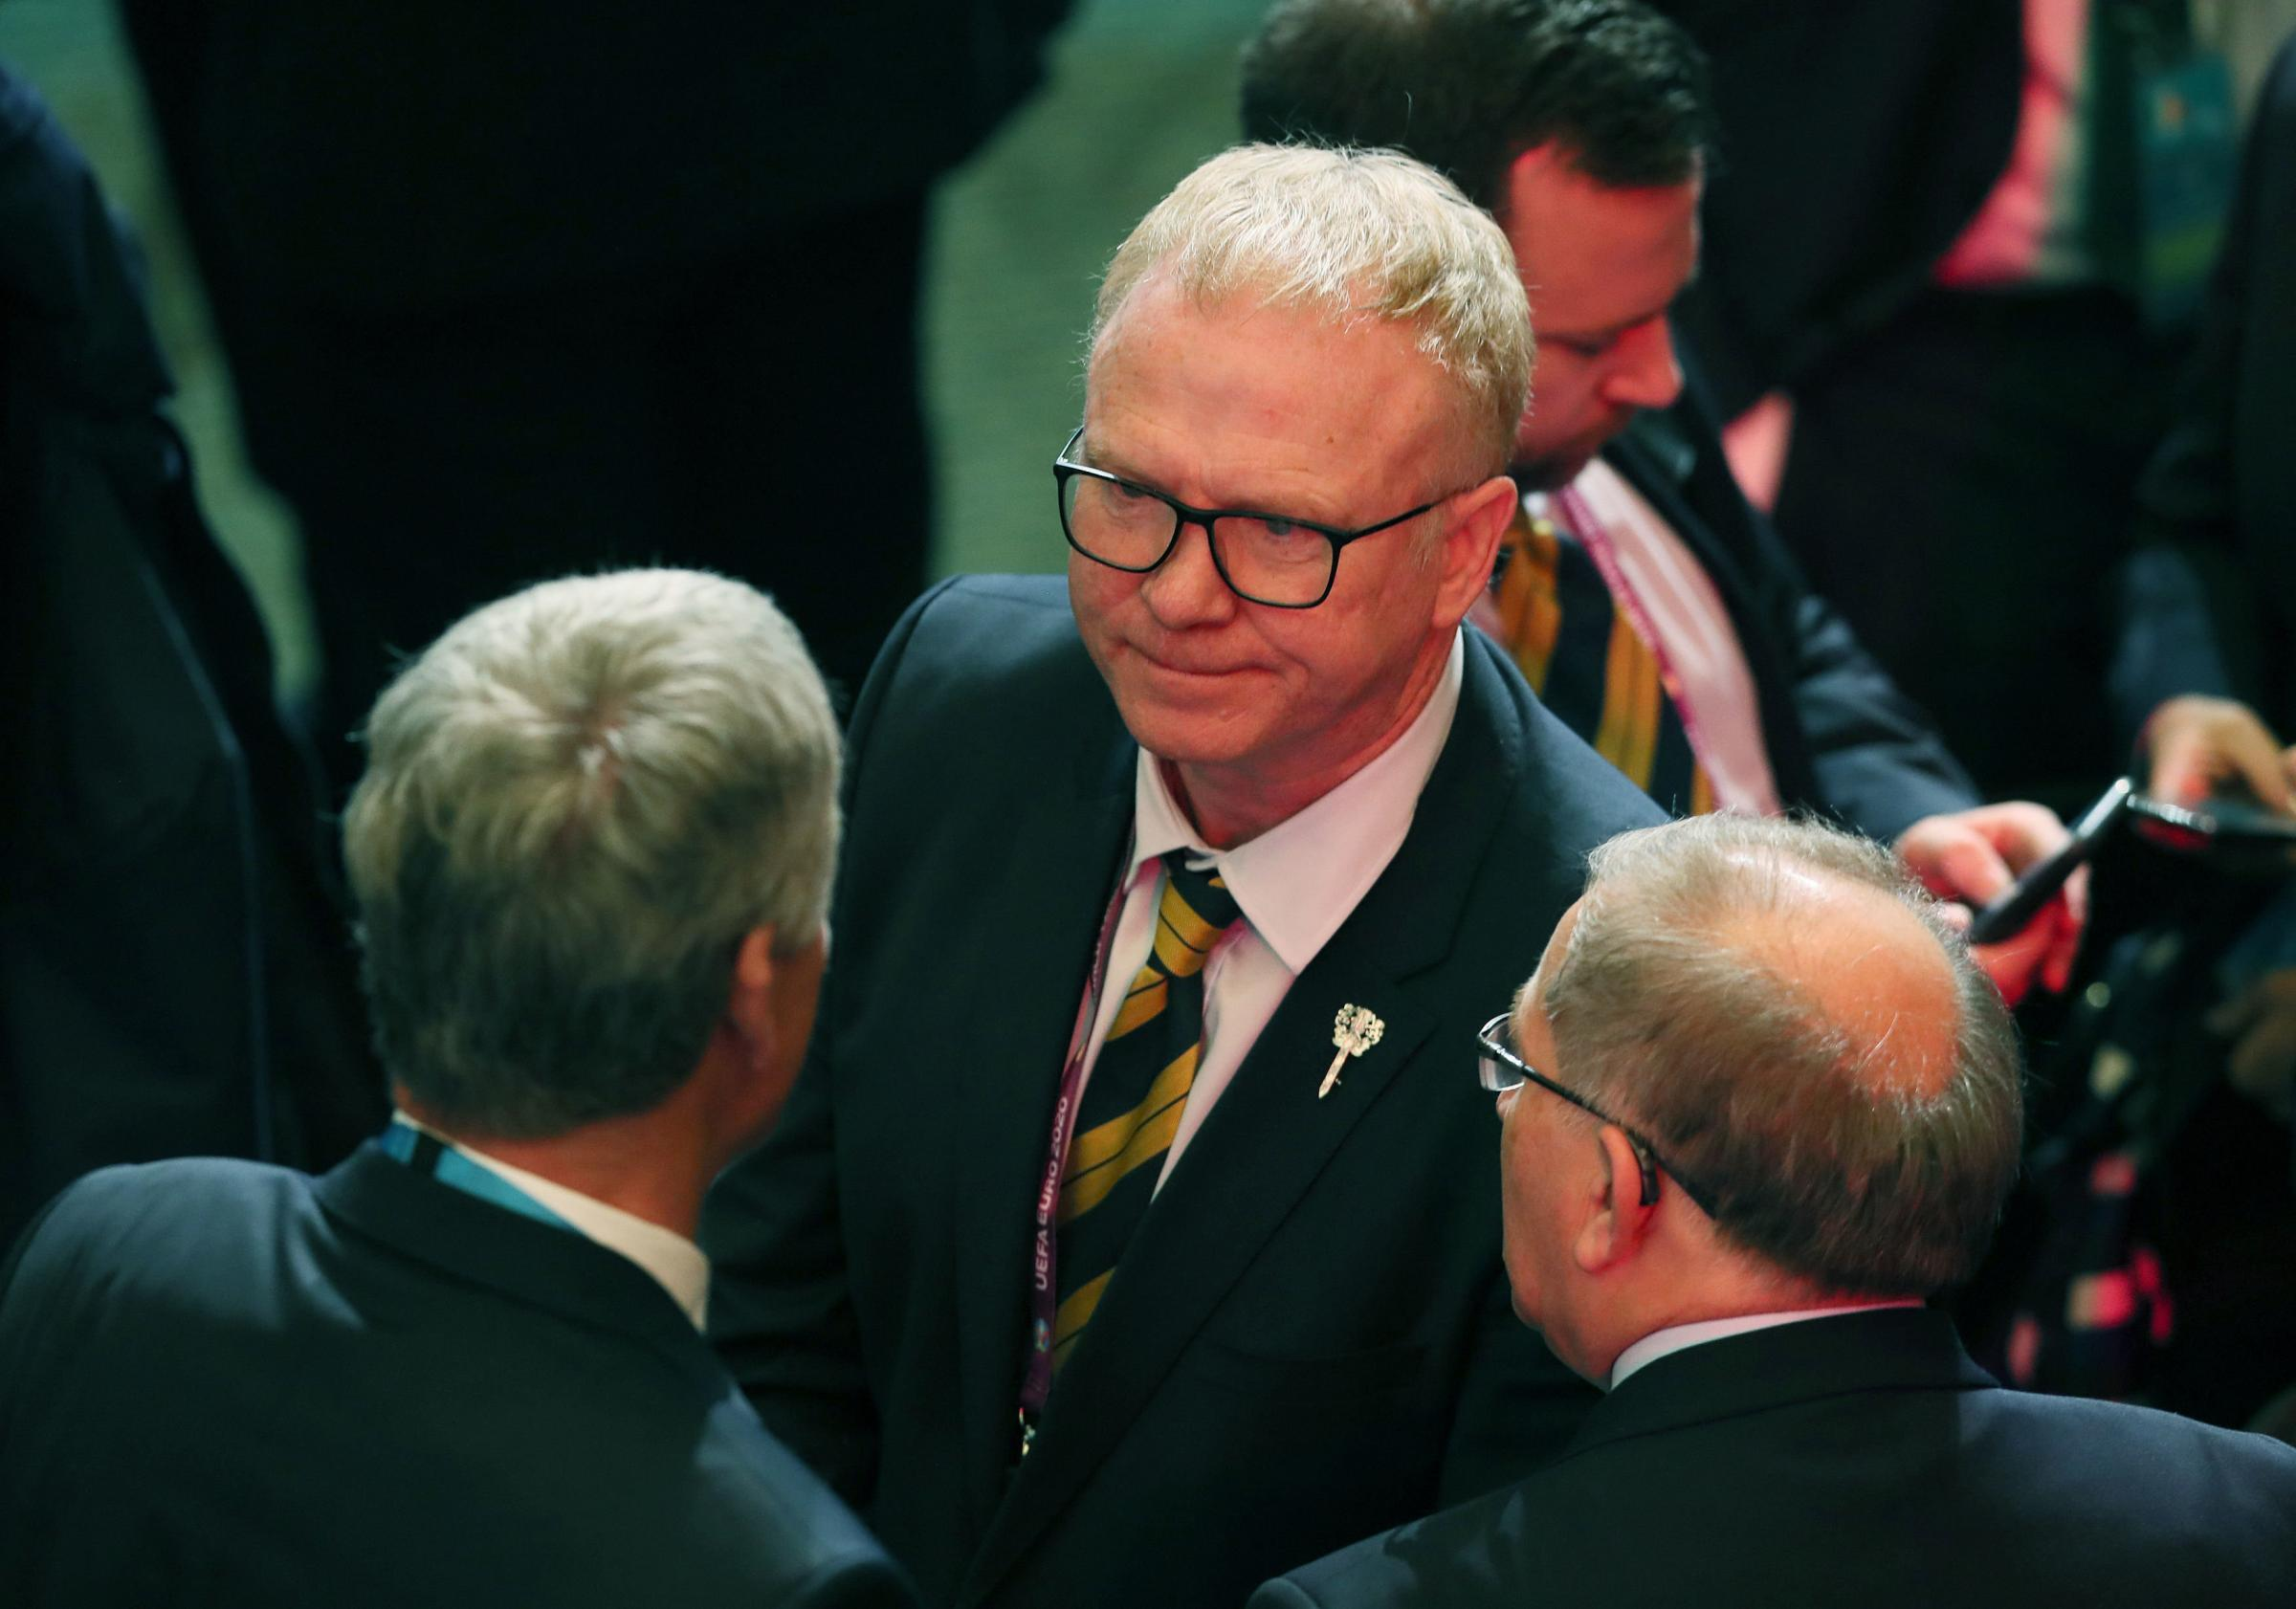 Scotland manager Alex McLeish (centre) following the Euro 2020 European qualifier draw at the Convention Centre, Dublin. PRESS ASSOCIATION Photo. Picture date: Sunday December 2, 2018. Photo credit should read: Brian Lawless/PA Wire.